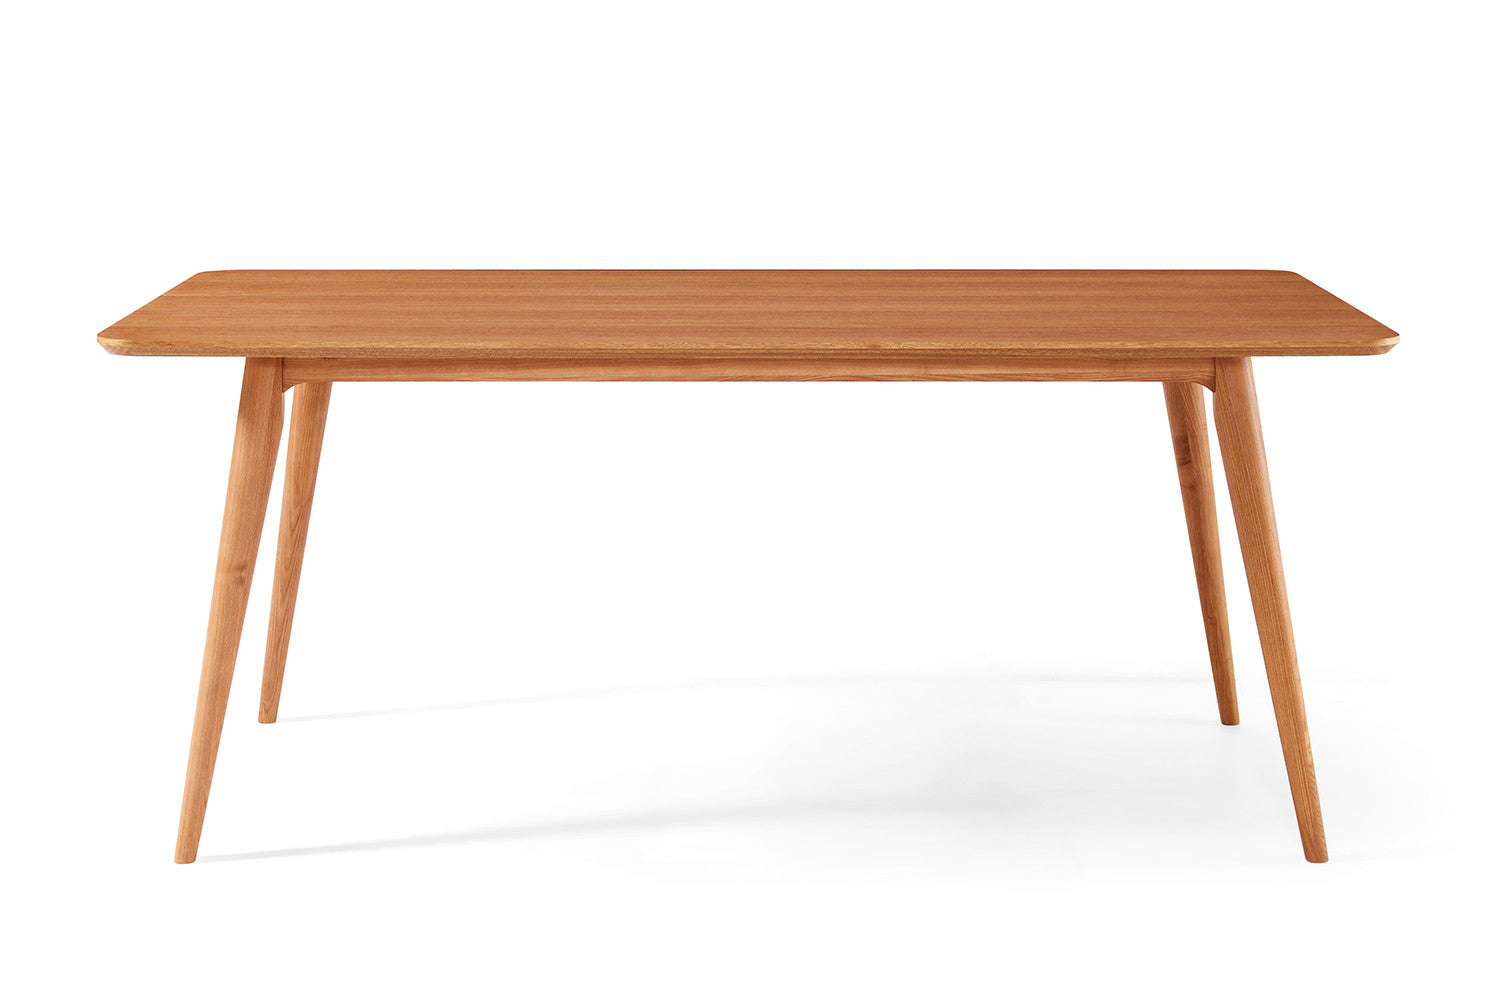 Table de salle manger design en bois julia dewarens for Table salle manger design